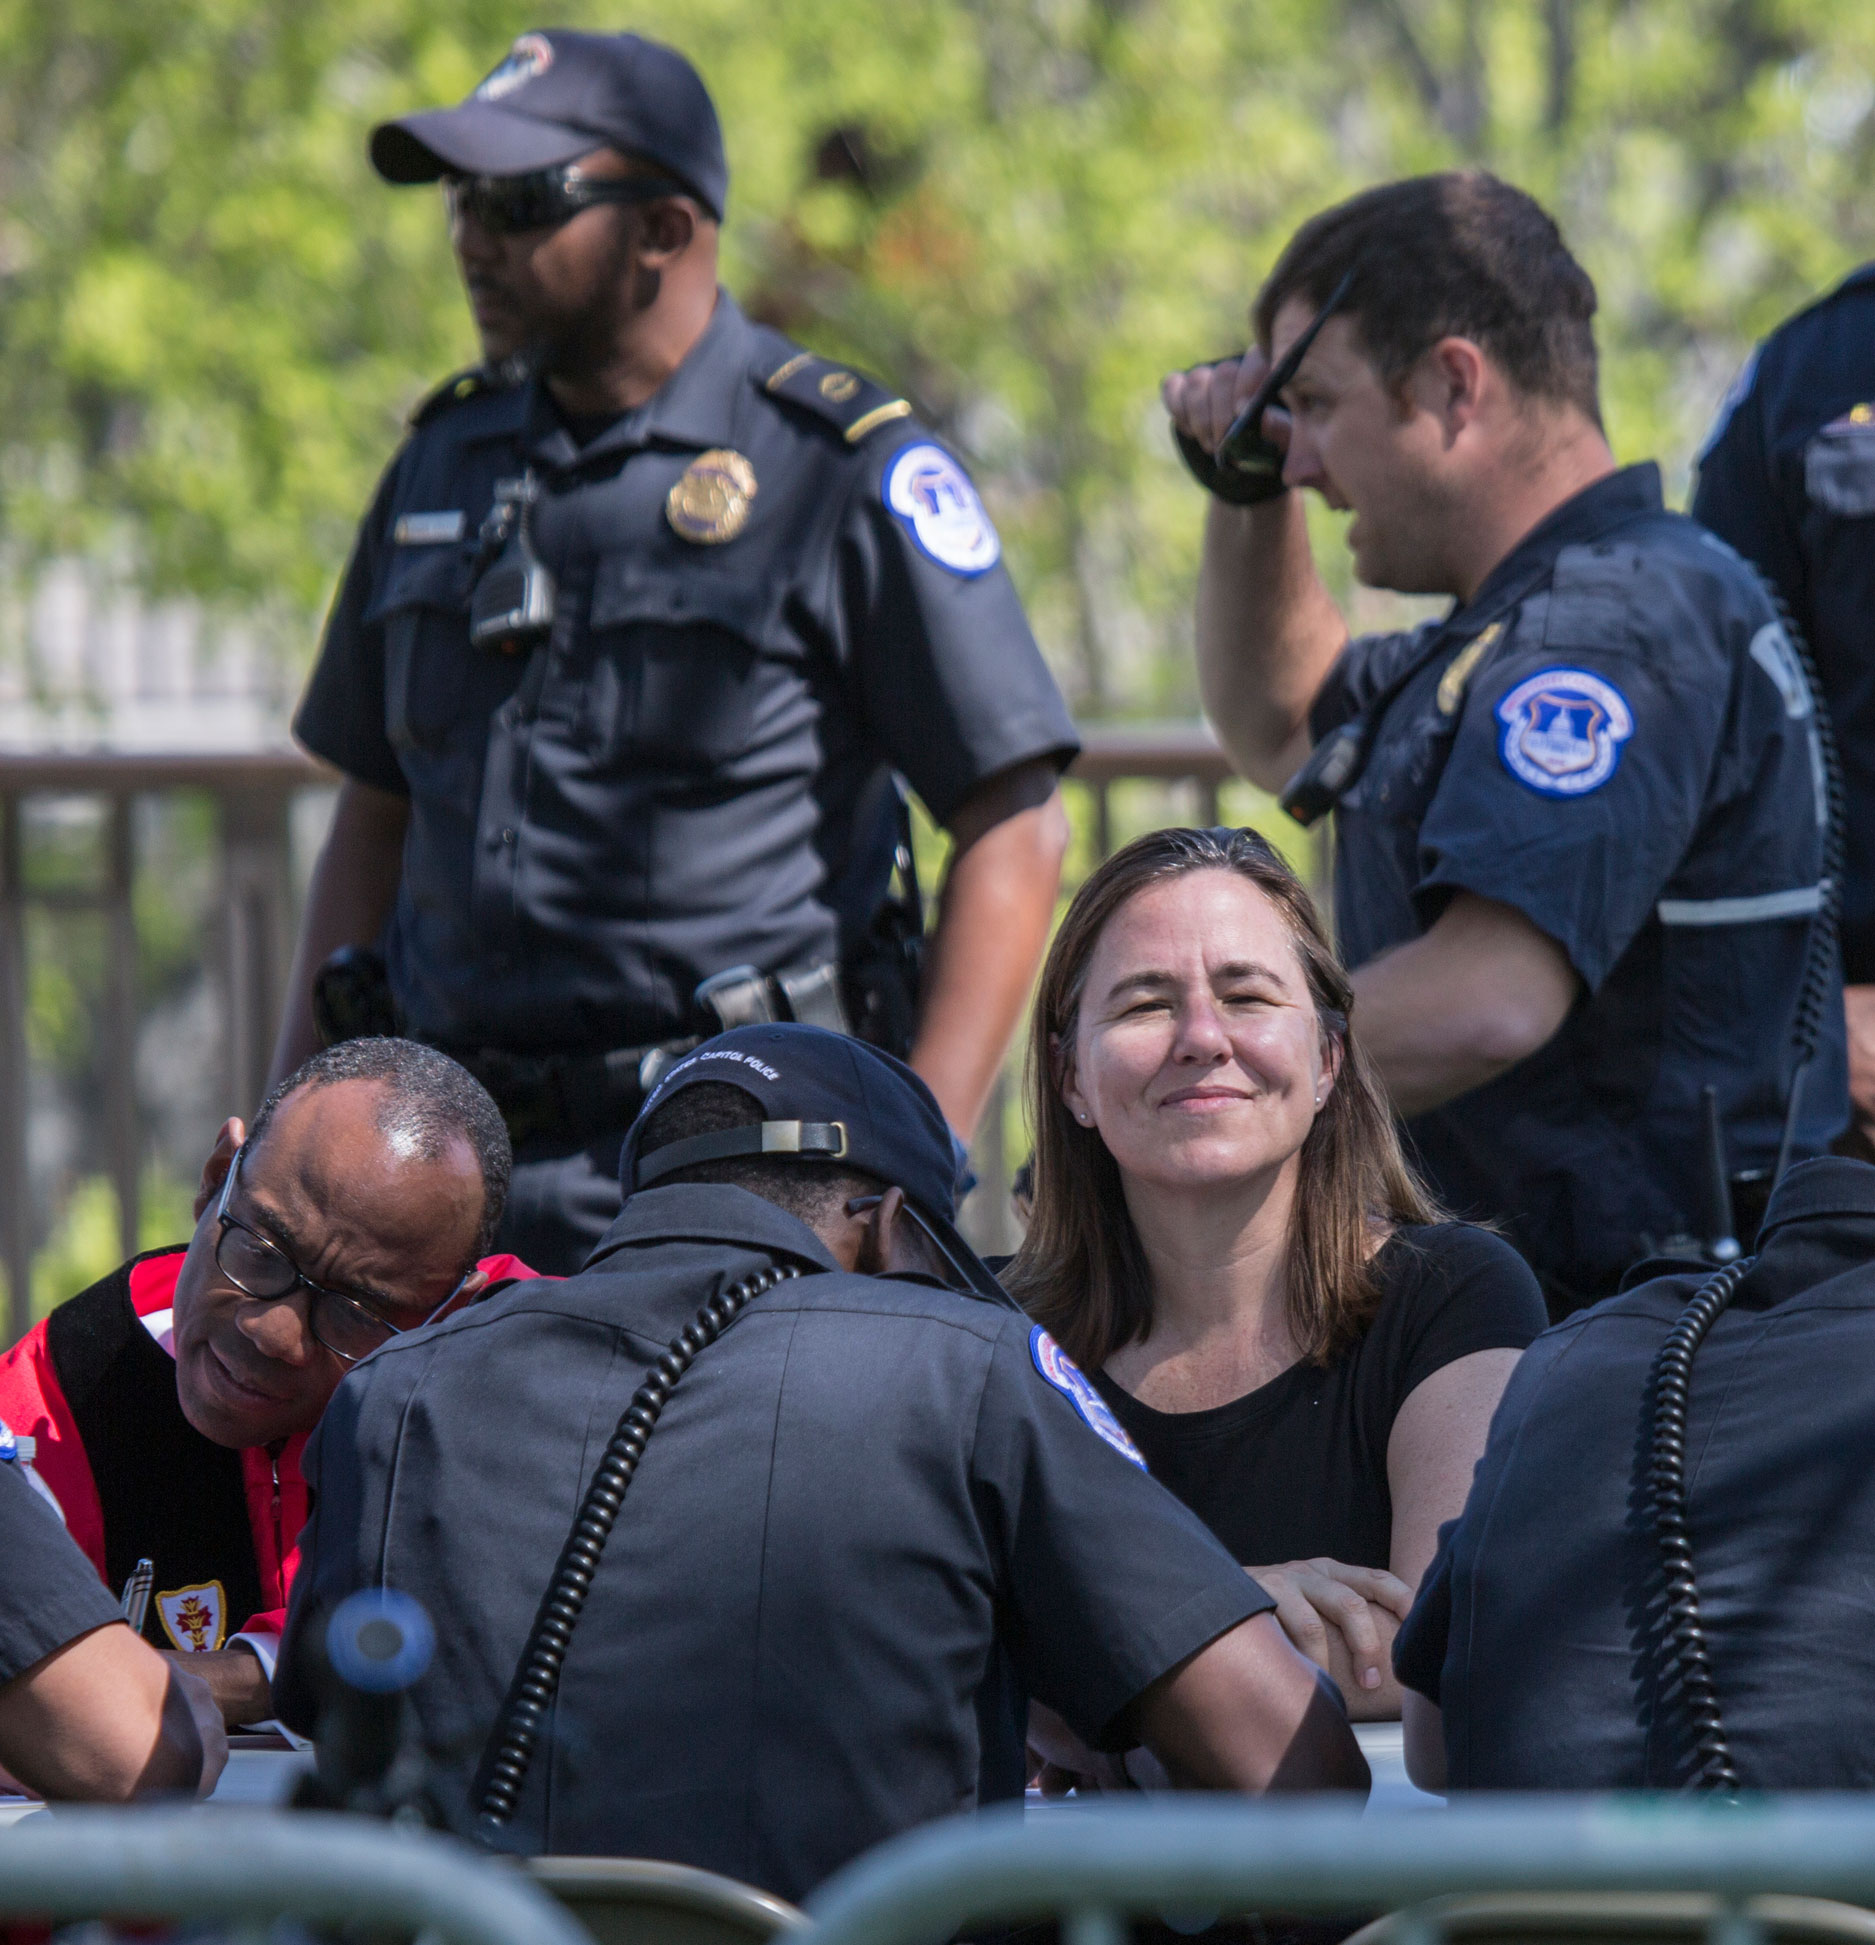 Annie Leonard was among the more than 300 people arrested at the Capitol for participating in a demonstration demanding democracy reforms as part of the #DemocracyAwakening ans #DemocracySpring movement in April 2016..Photo by Tim Aubry/Greenpeace